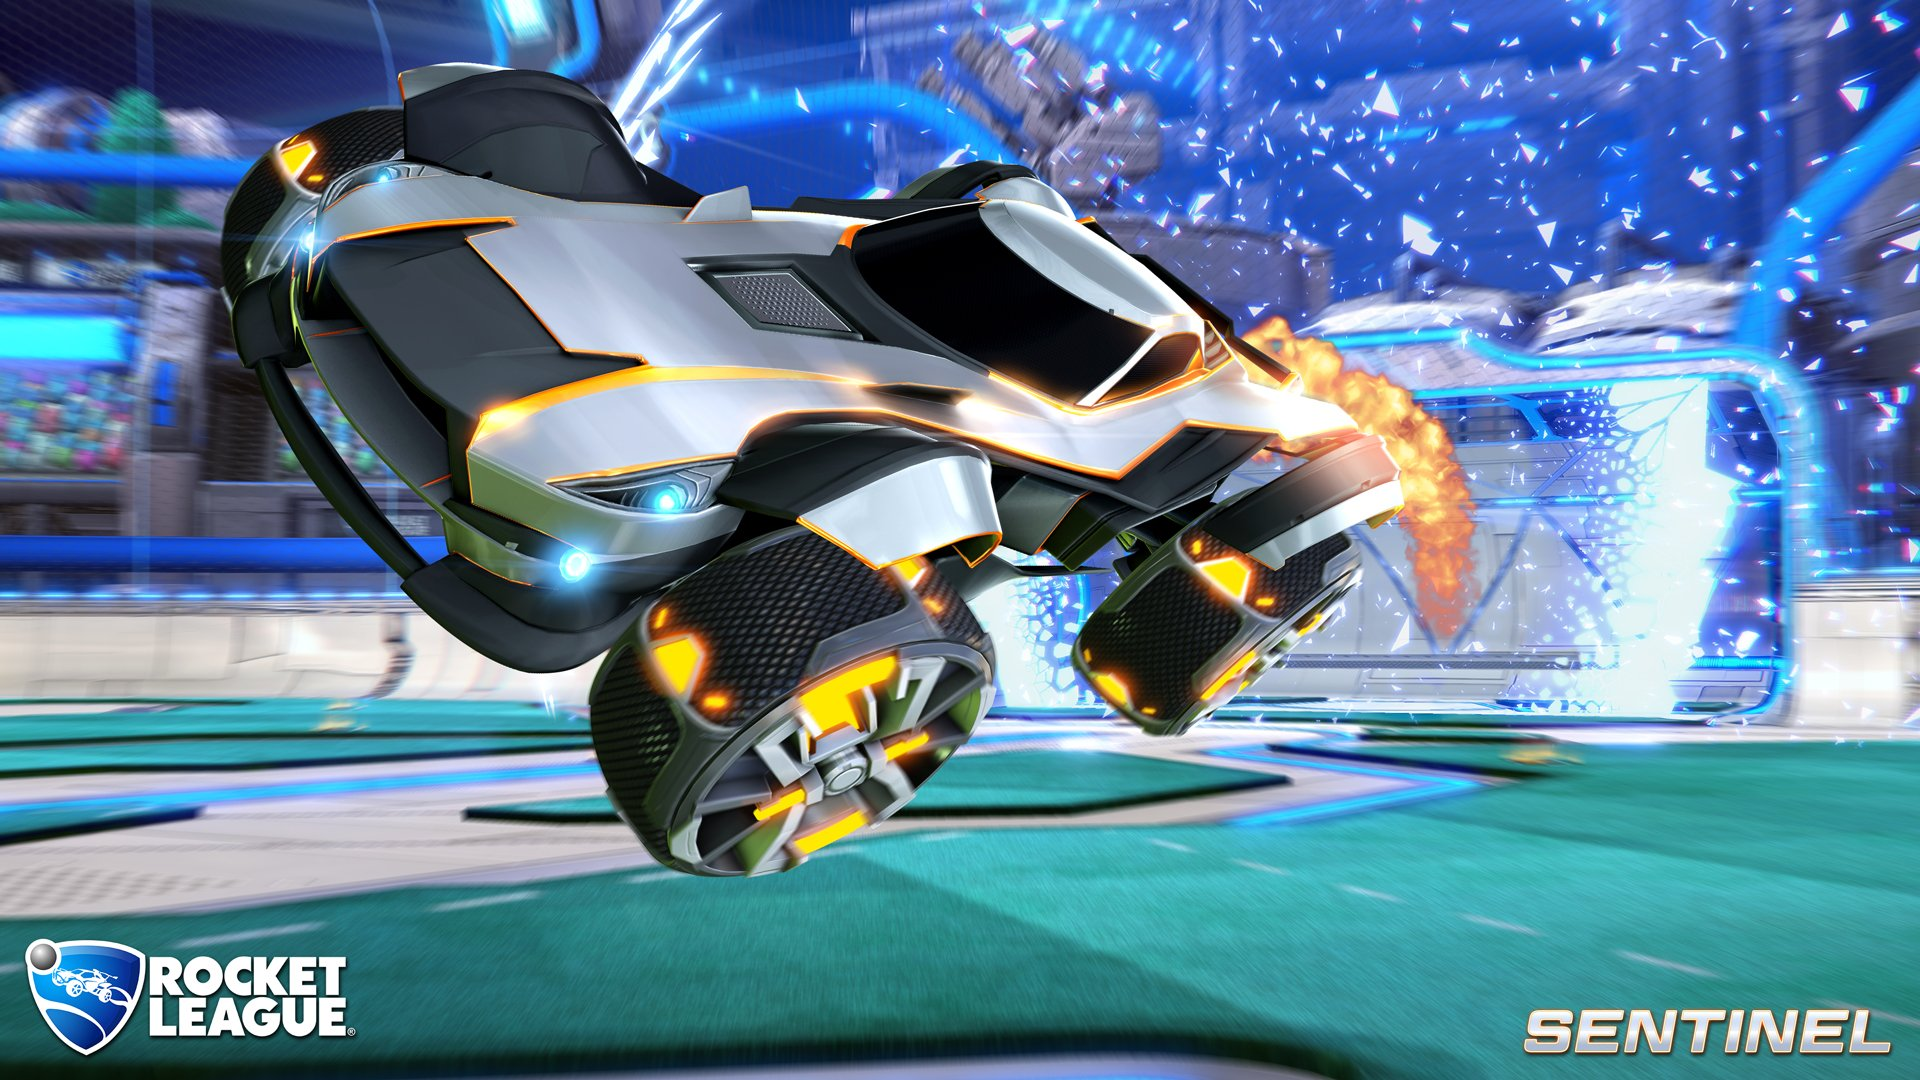 Rocket League Sentinel